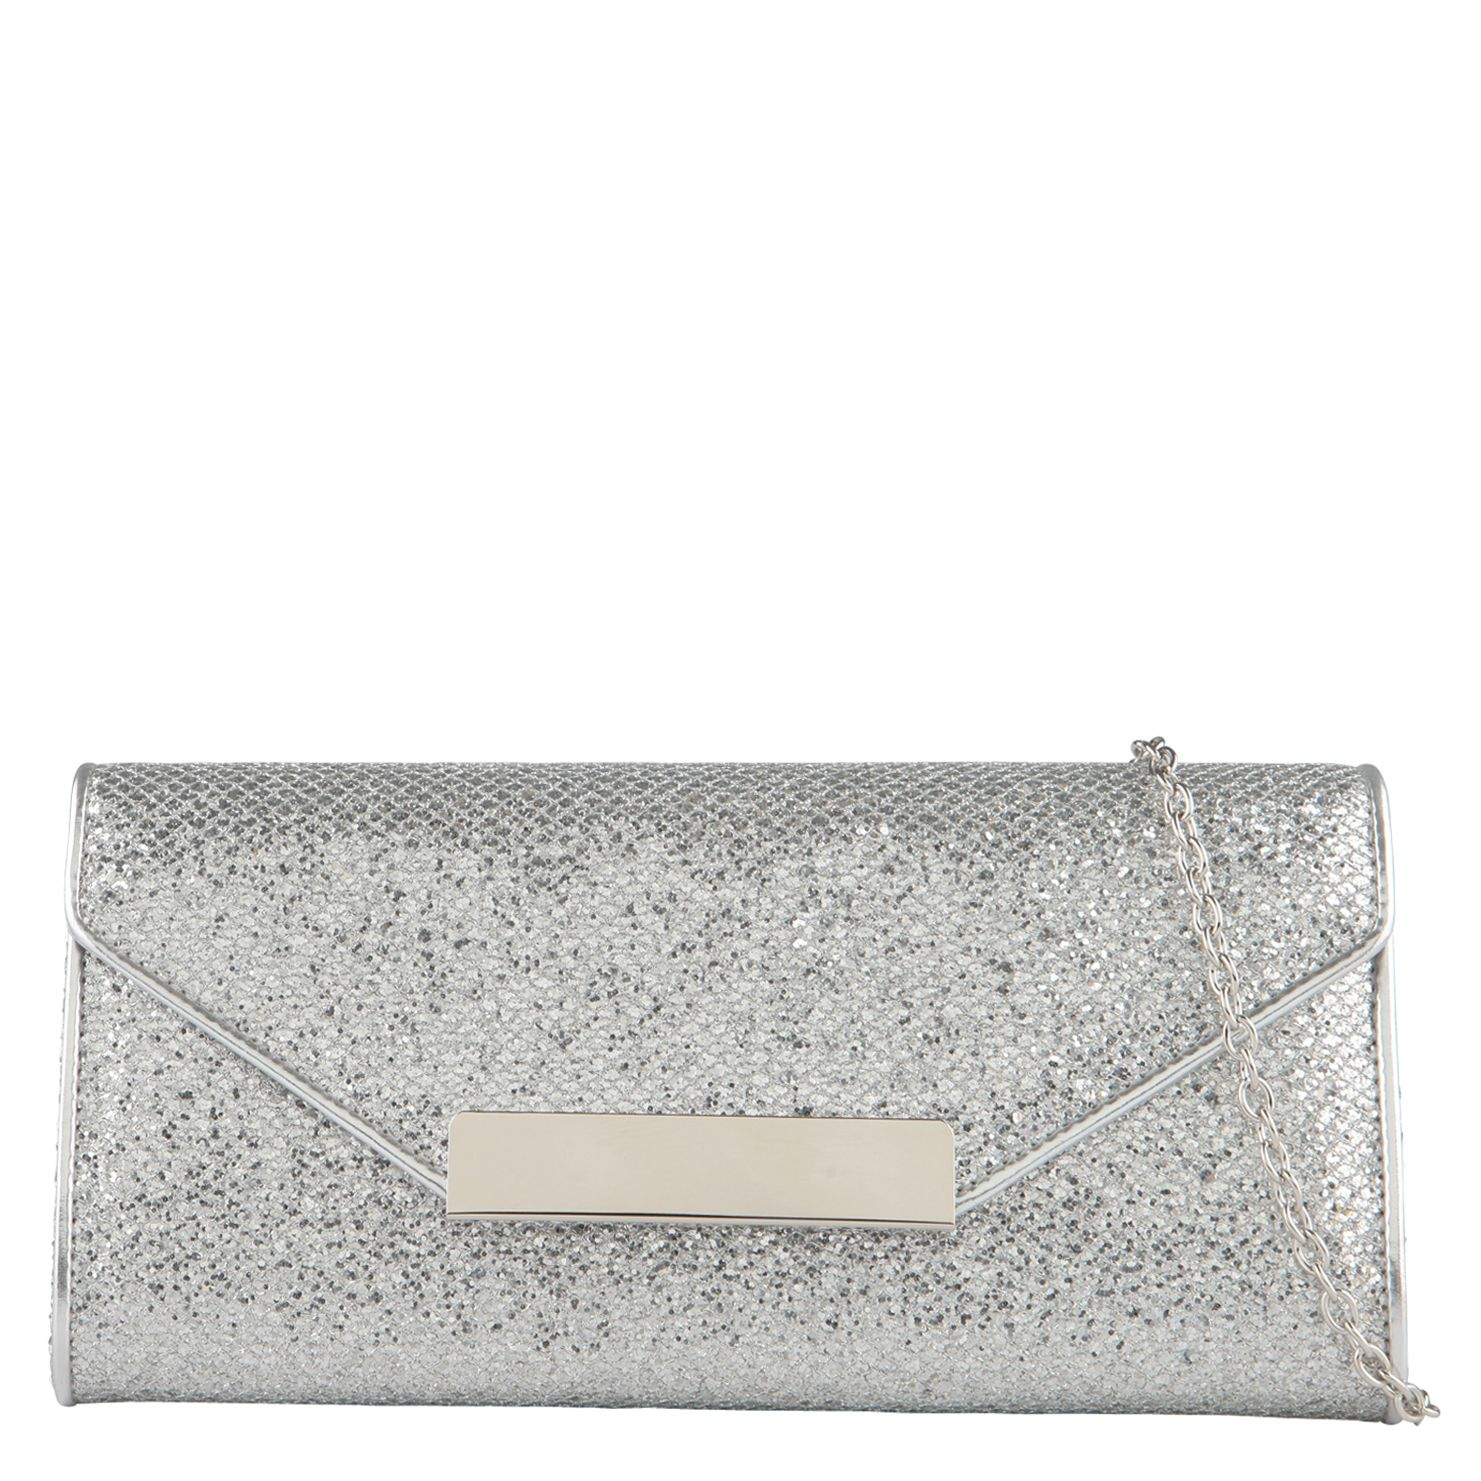 Gower clutch bag